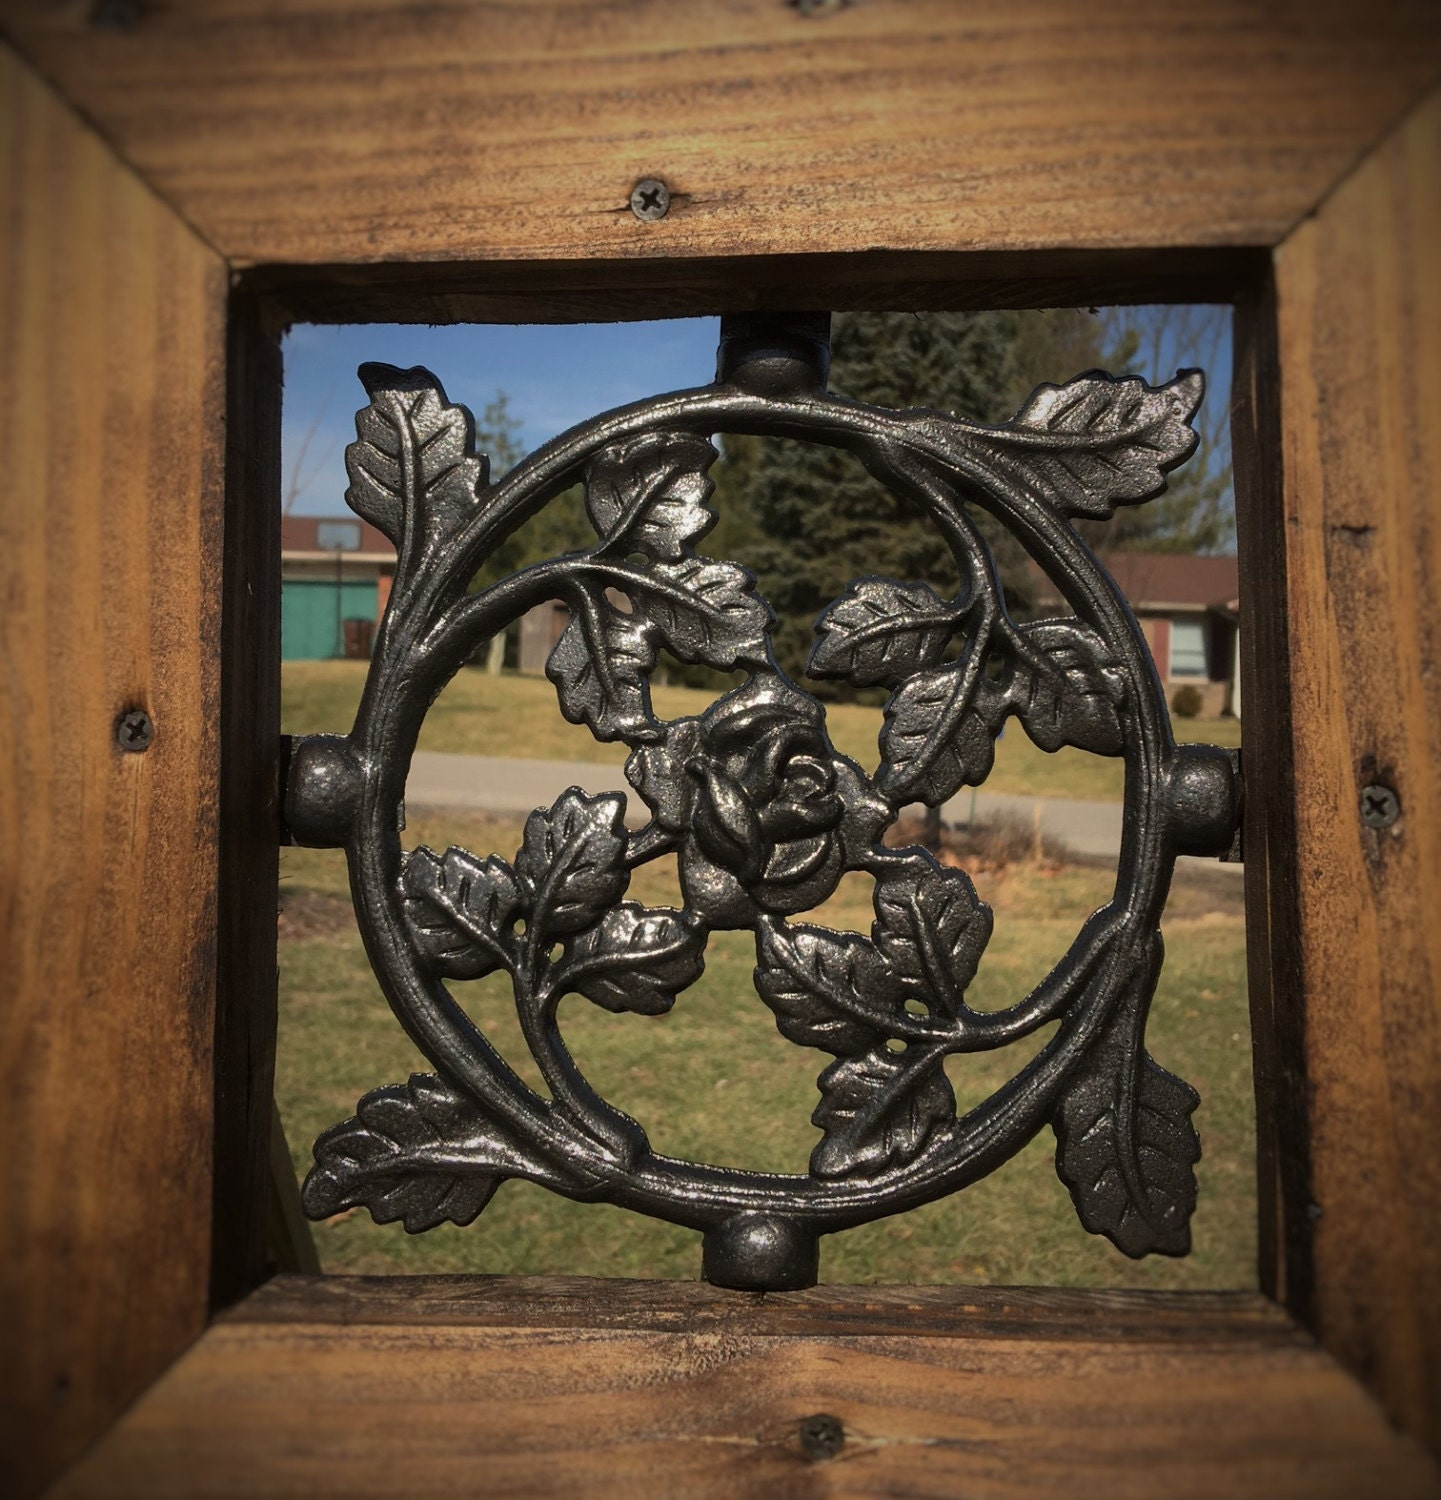 1500 #68492F Cast Iron Rose Pattern Wood Gate Window Insert picture/photo Cast Iron Security Doors 7191441